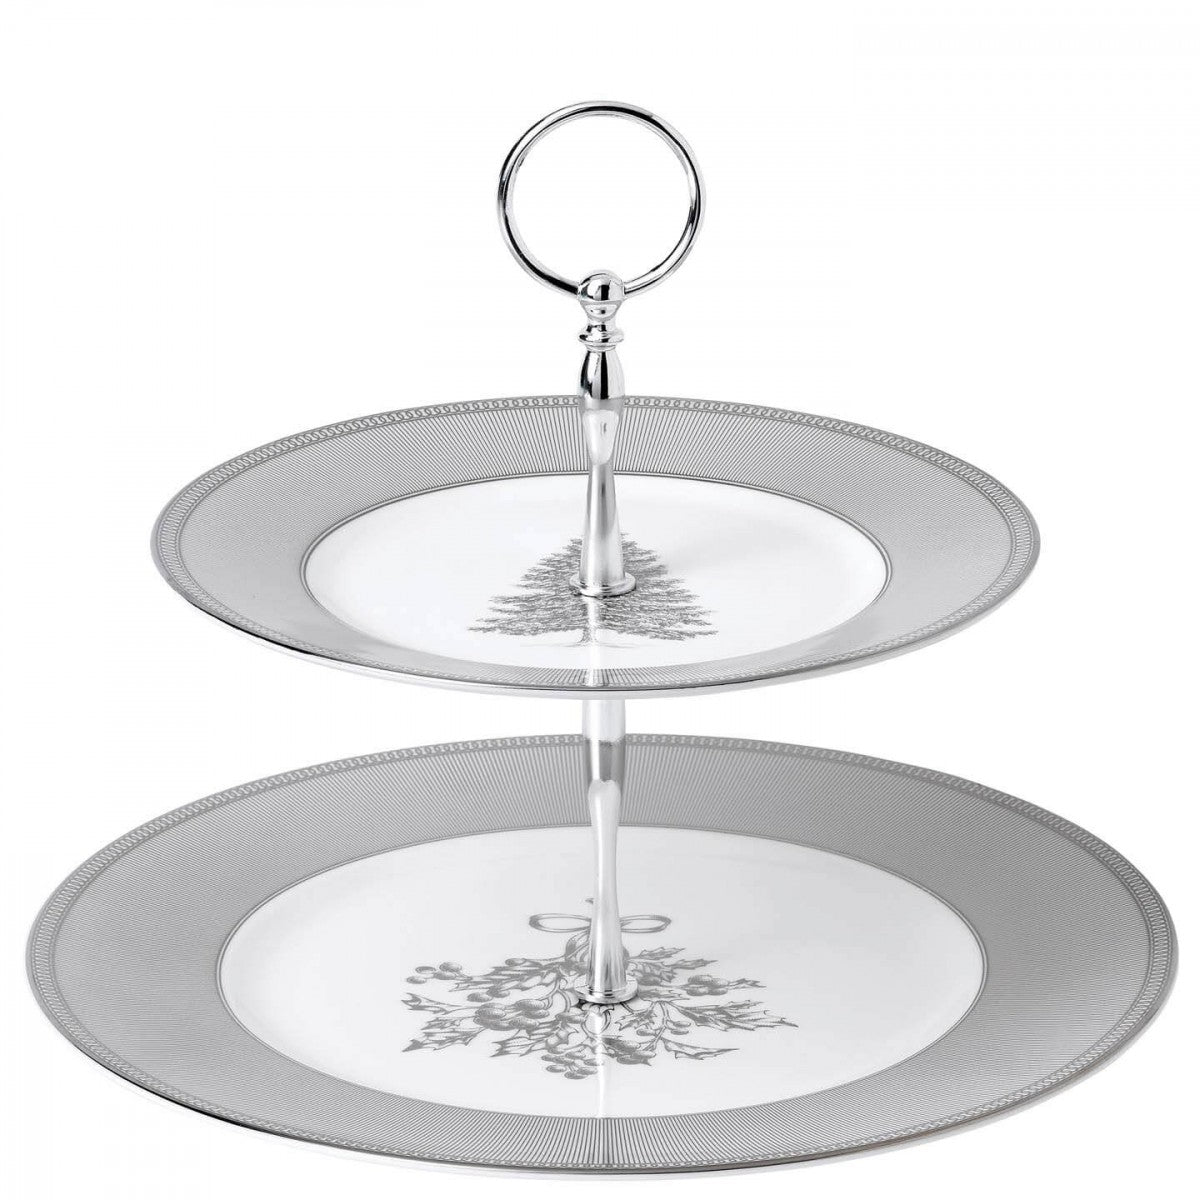 Christmas 2018: Winter White 2 Tier Cake Stand